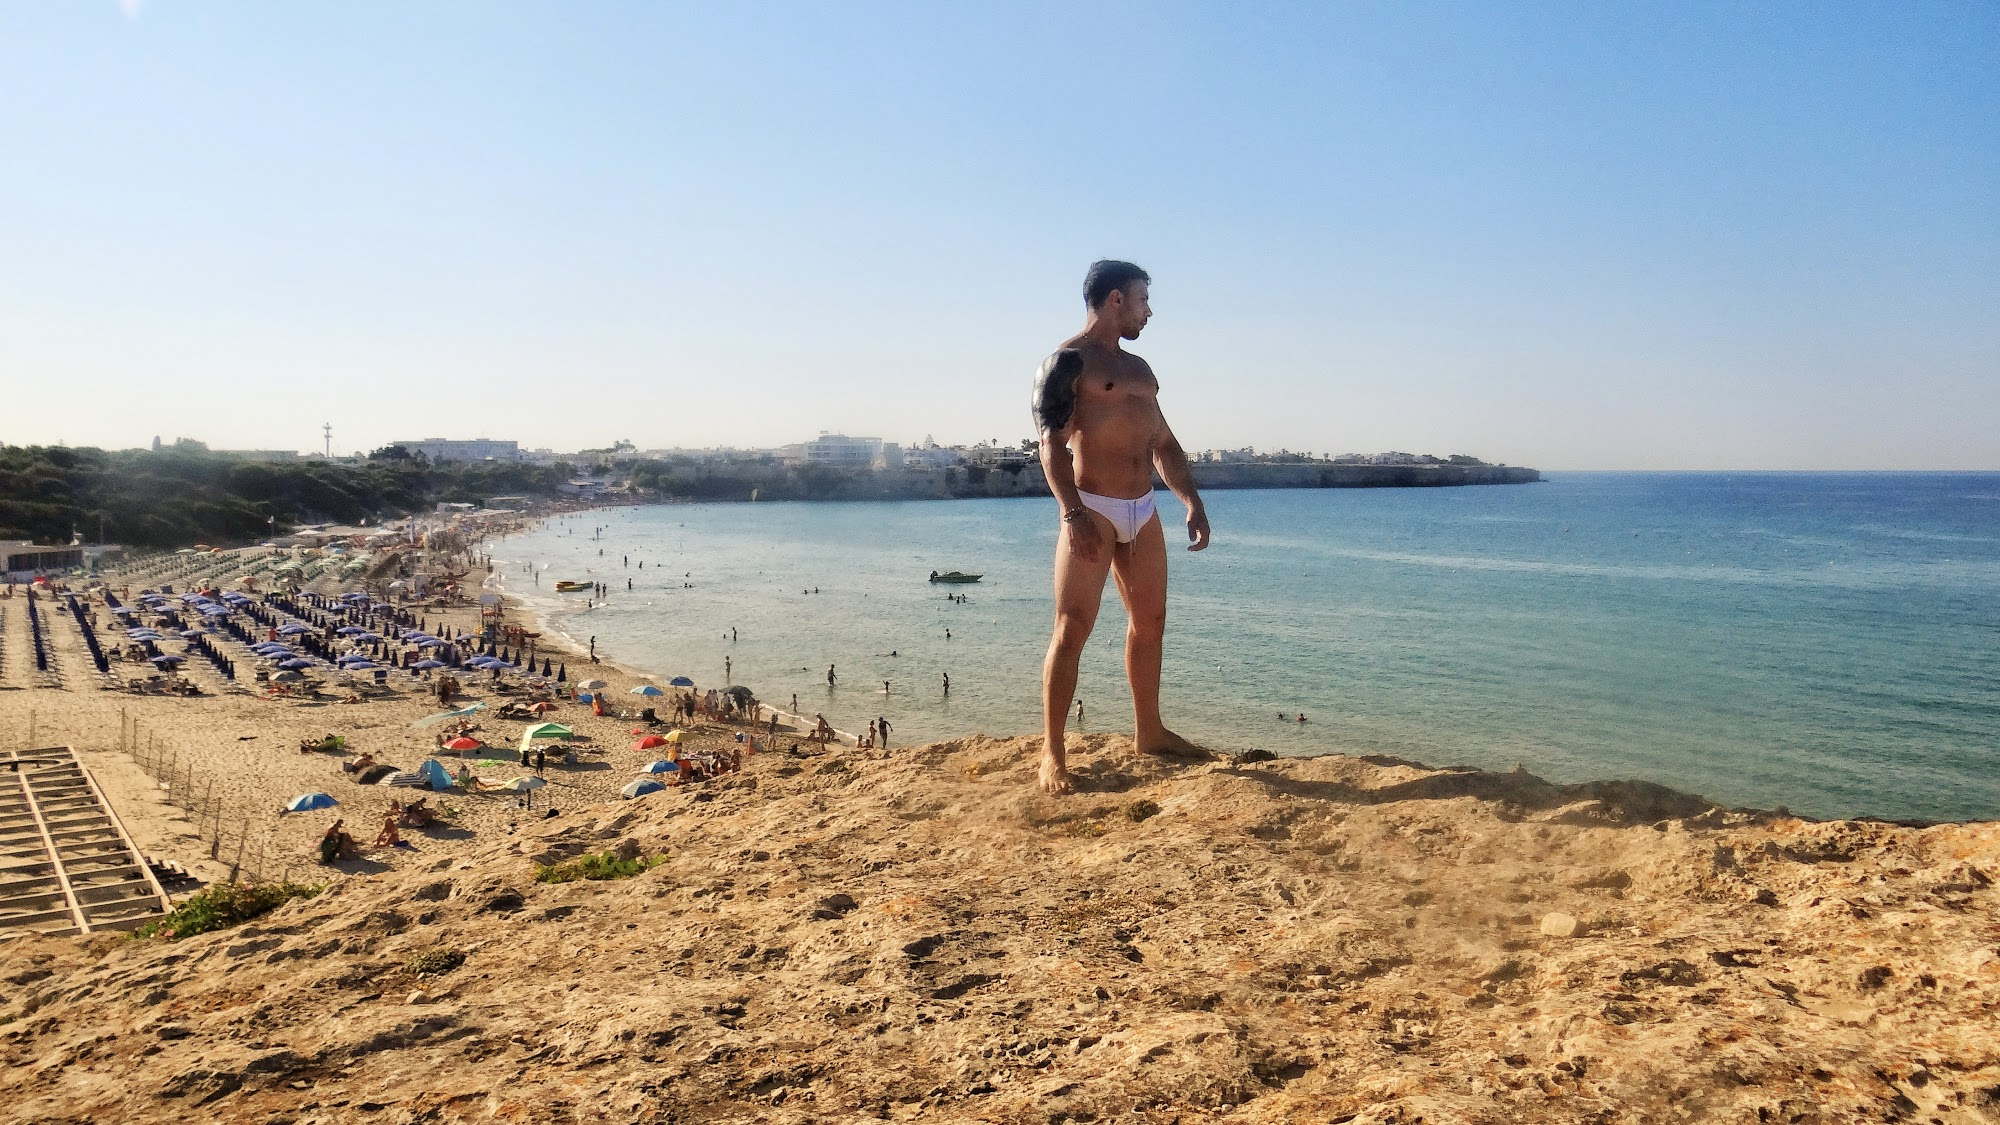 The Big Gay Podcast from Puglia - the definitive guide to gay Puglia and Puglia gay beach and Puglia nude beach destinations.